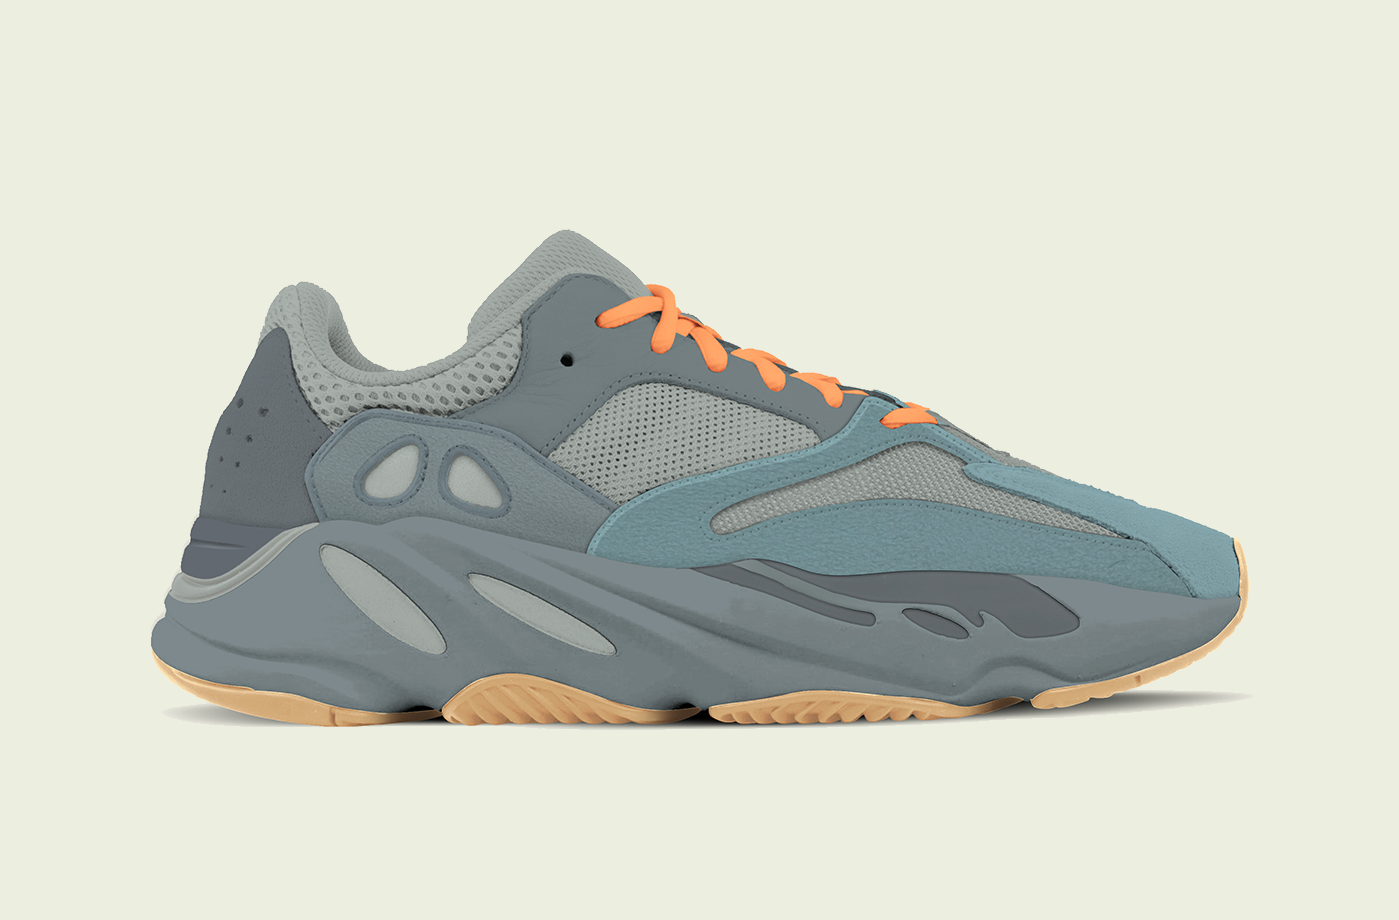 adidas Yeezy Boost 700 Teal Blue Release Date Info